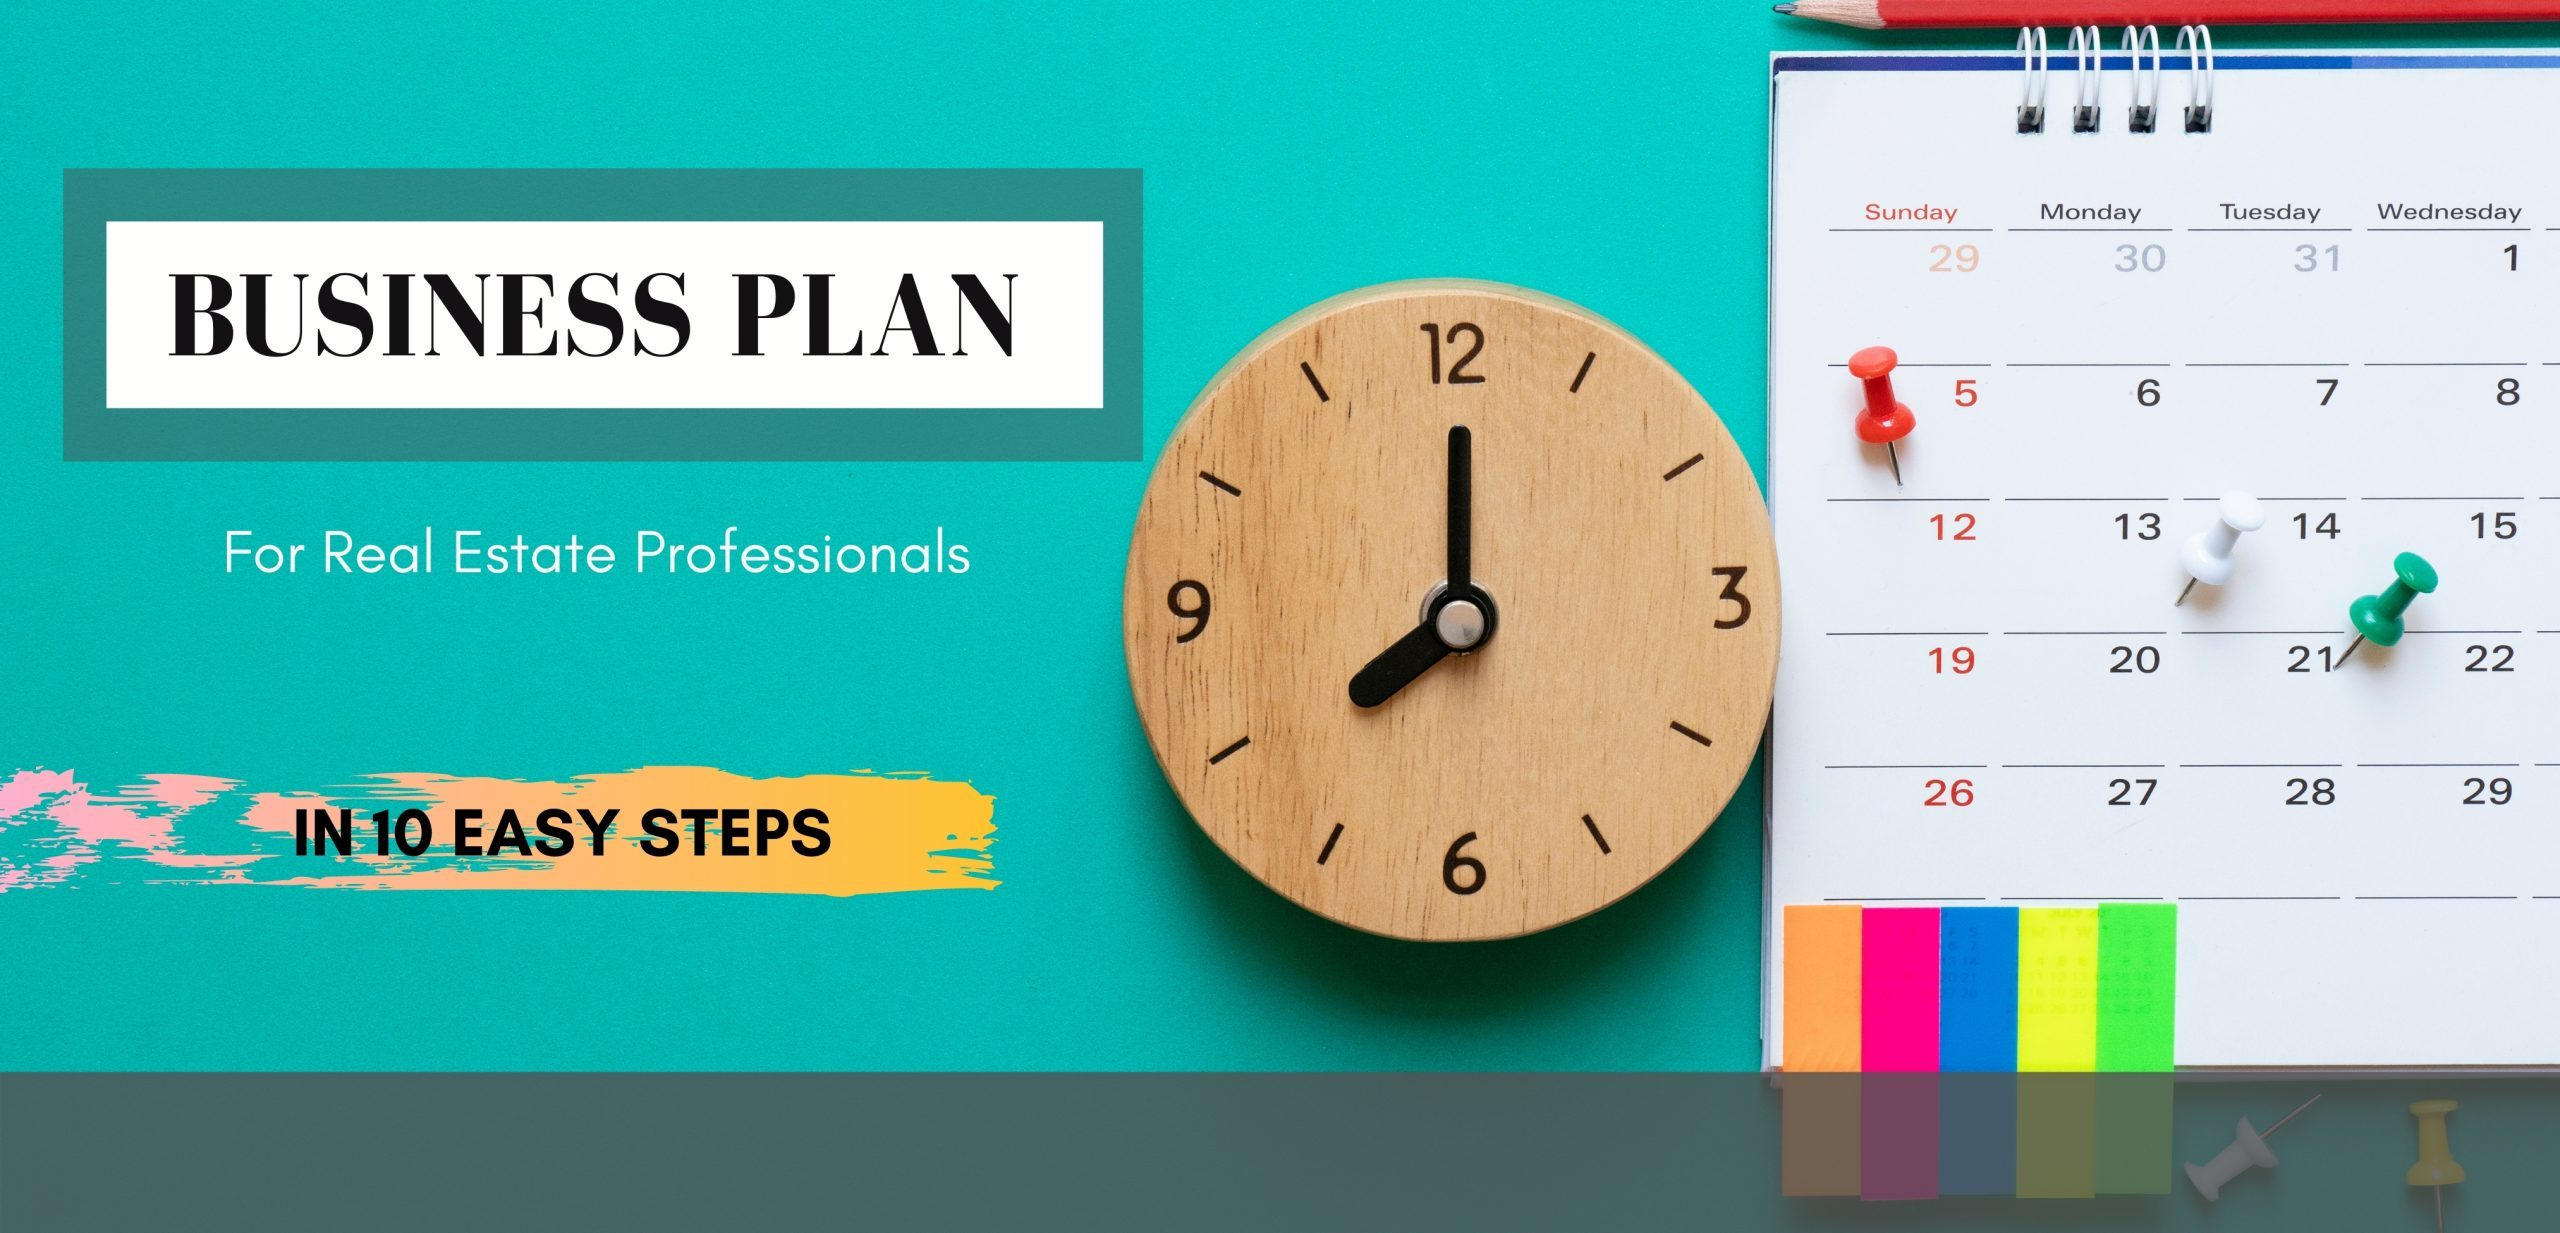 BUSINESS PLAN – WHAT, WHY, HOW?